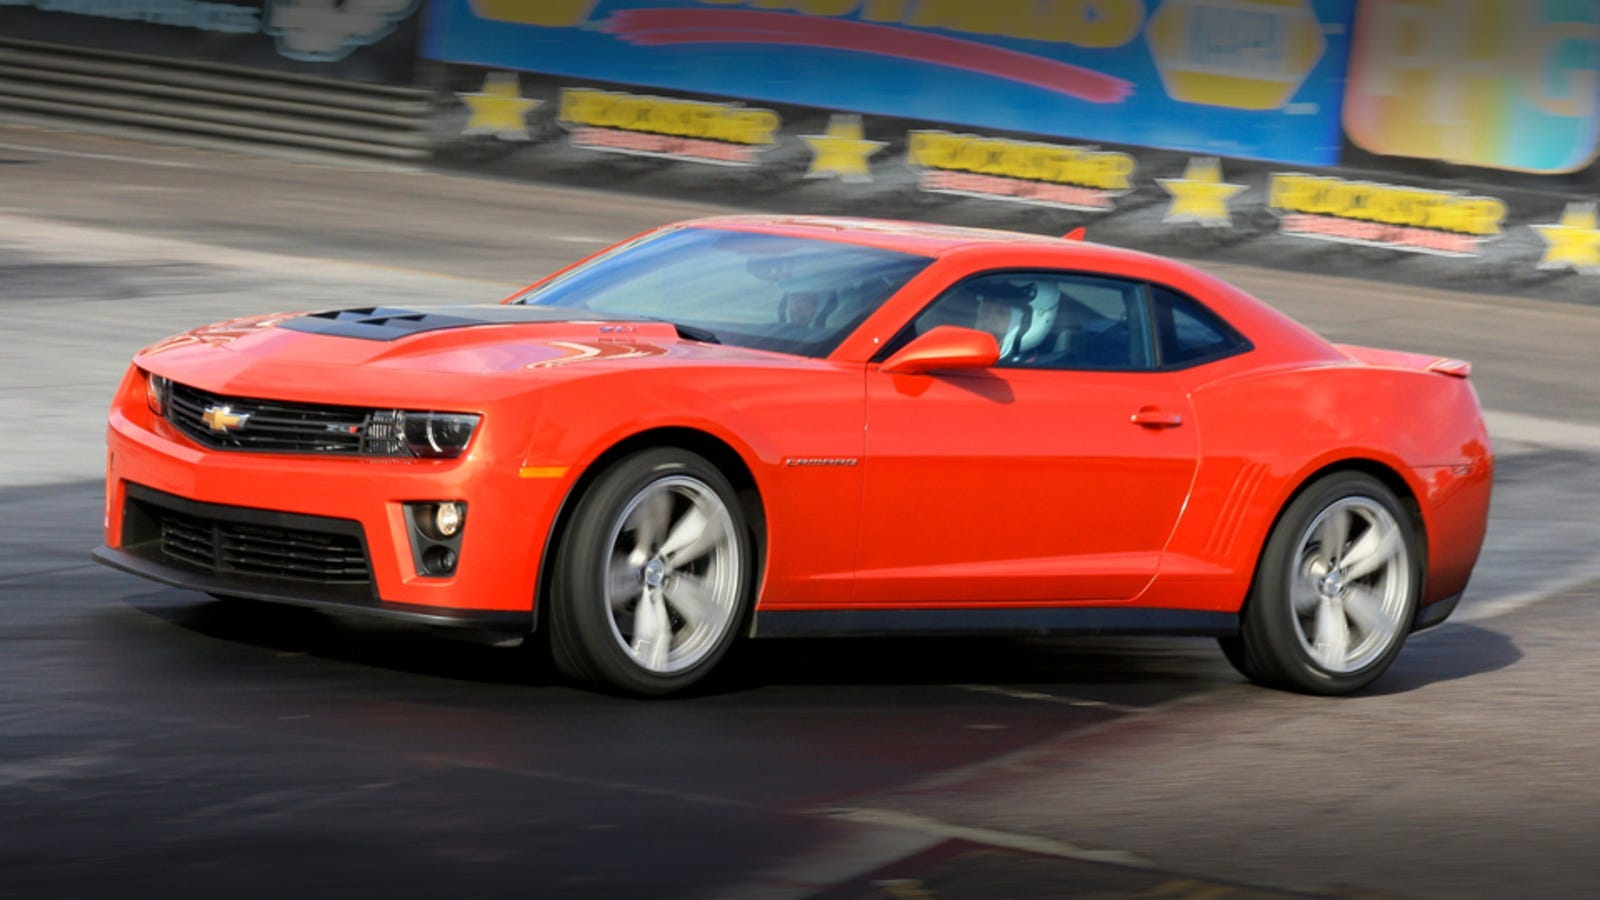 2012 Chevy Camaro Zl1 First Drive